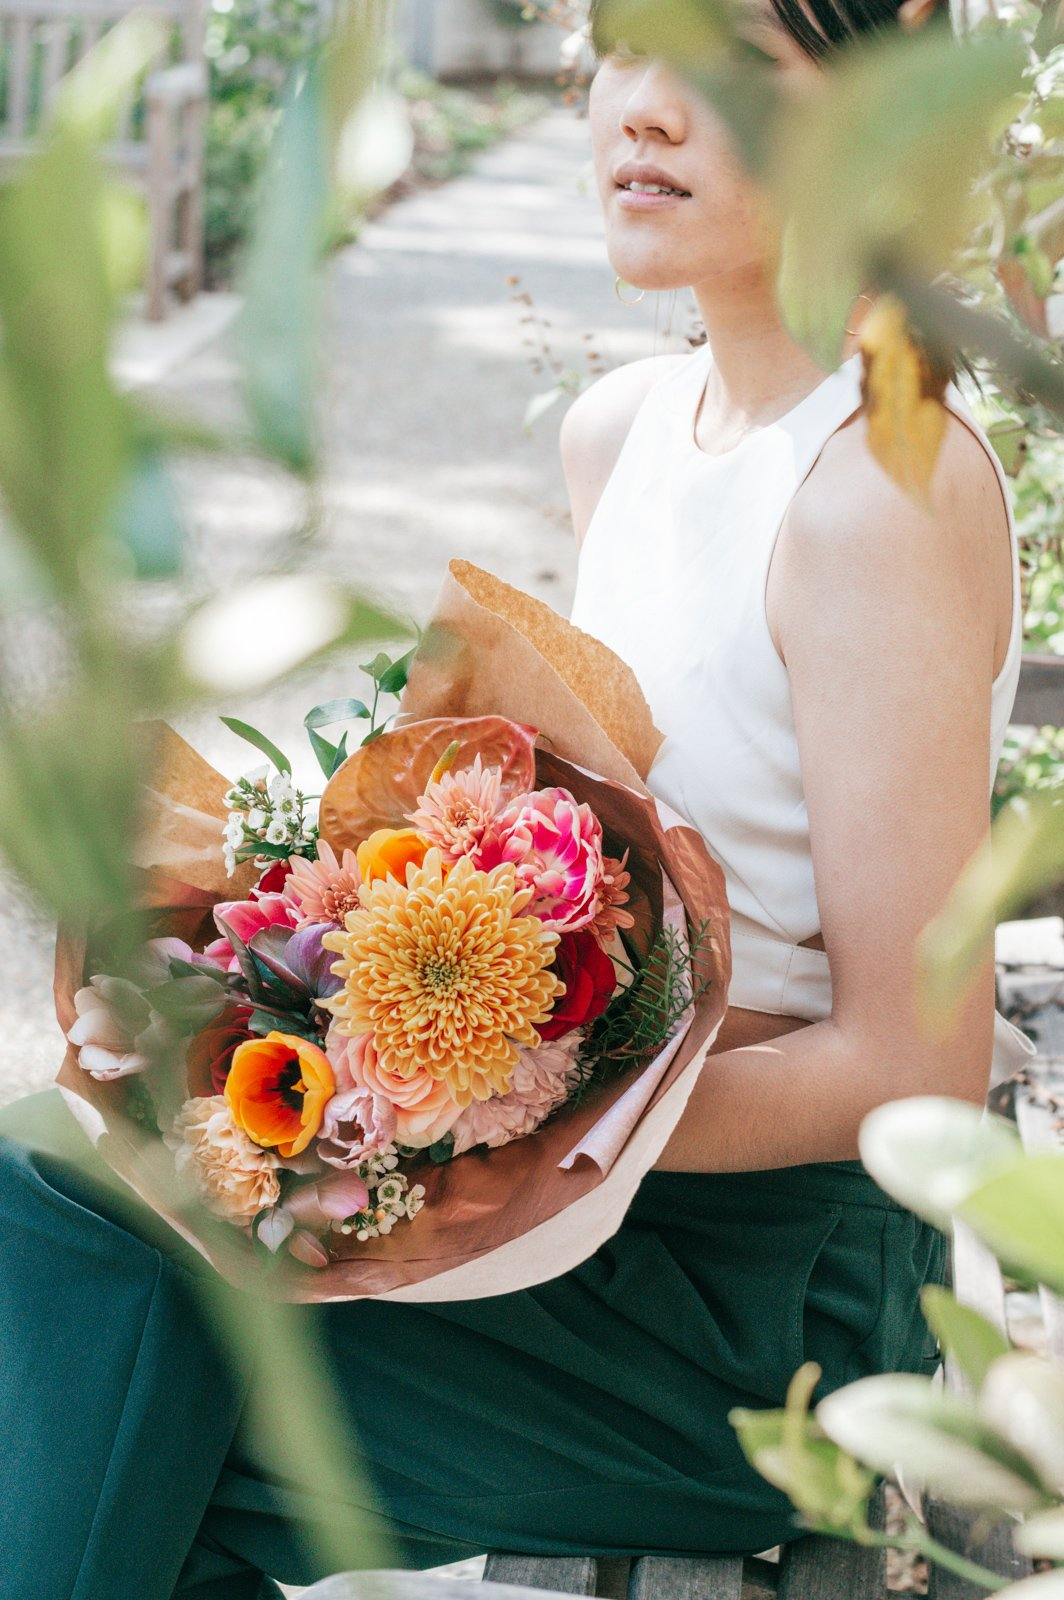 Girl sitting and holding a bouquet of flowers